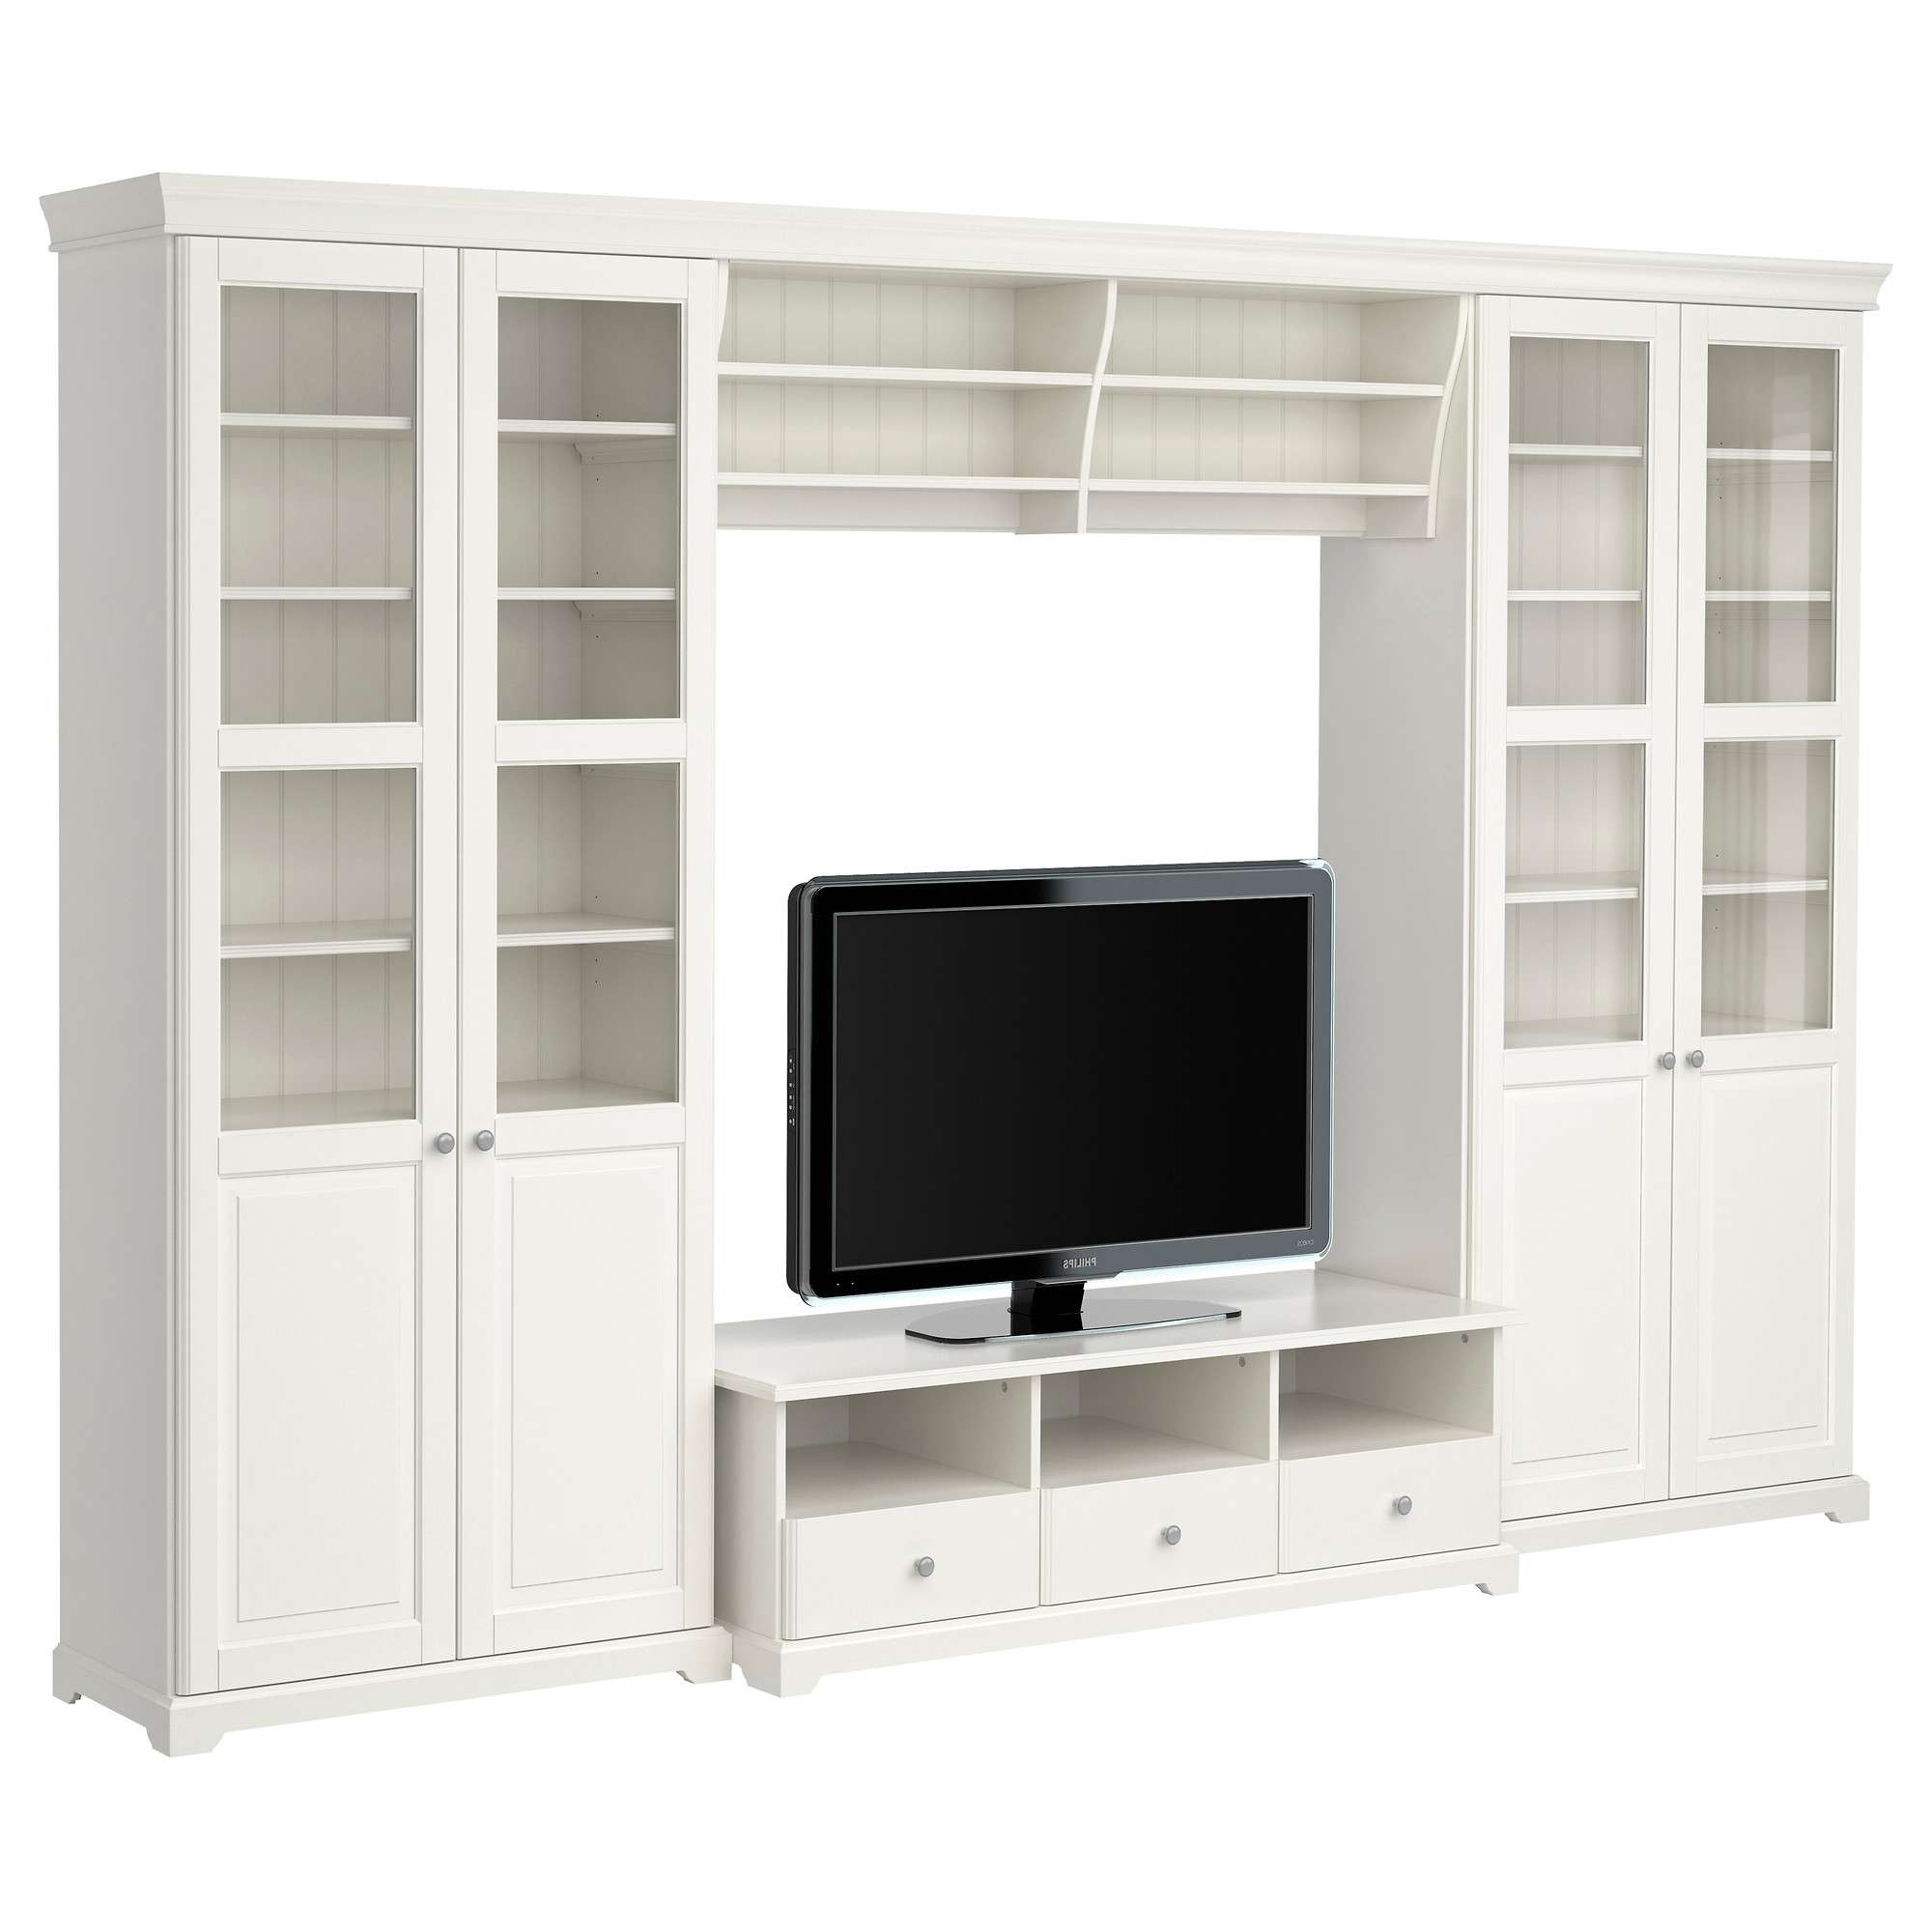 Tv Stands & Entertainment Centers – Ikea Within Tv Stands Bookshelf Combo (View 2 of 15)